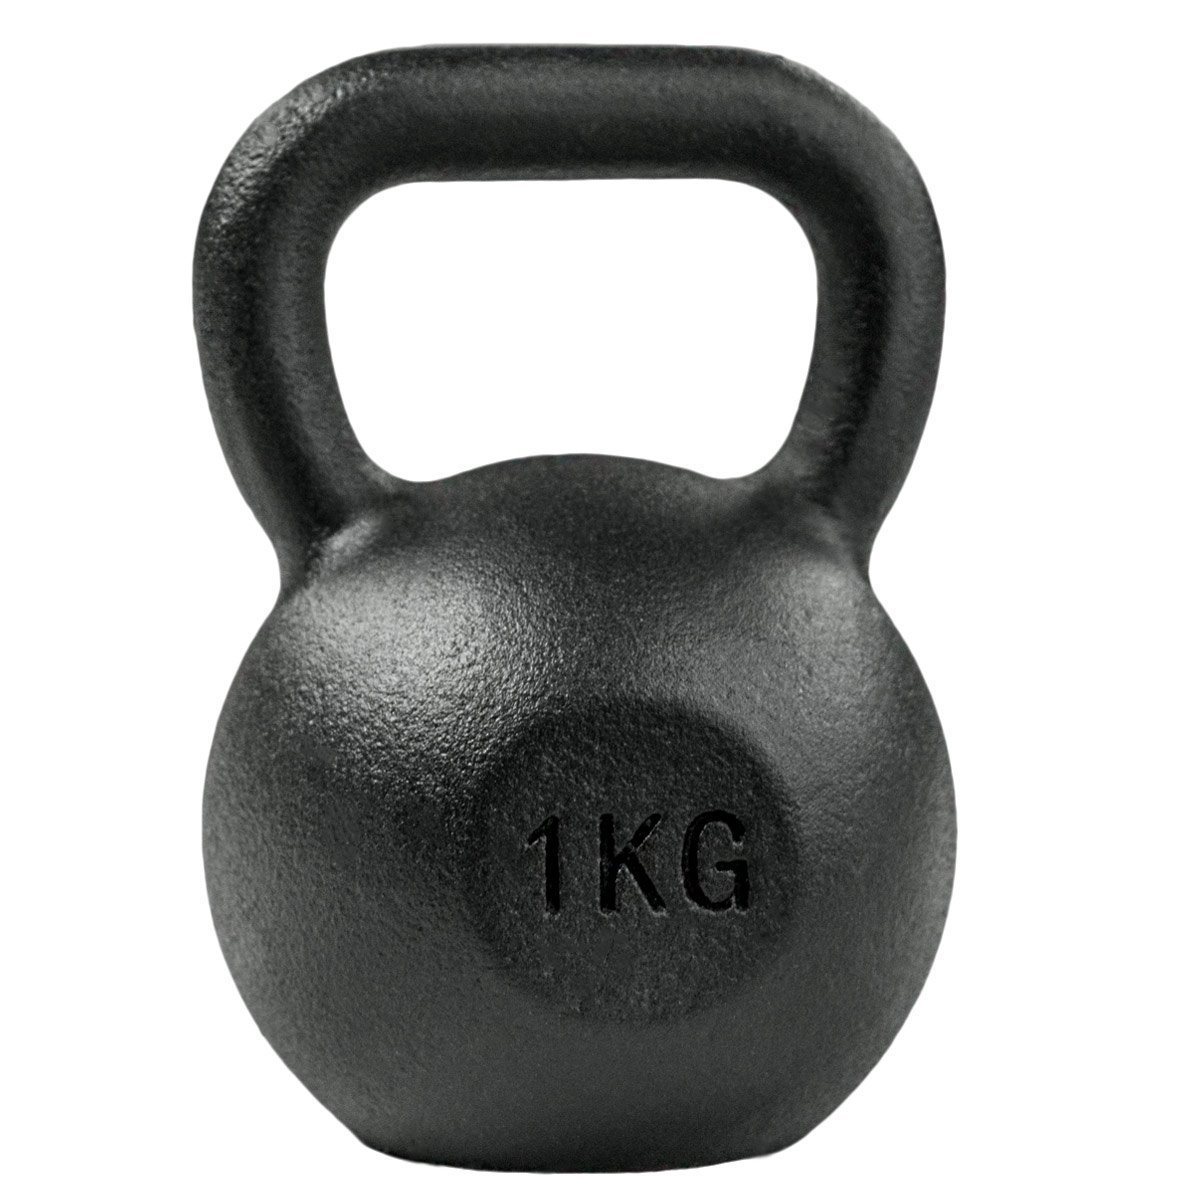 Rep 1 kg Kettlebell Paperweight or Gift Item by REP FITNESS